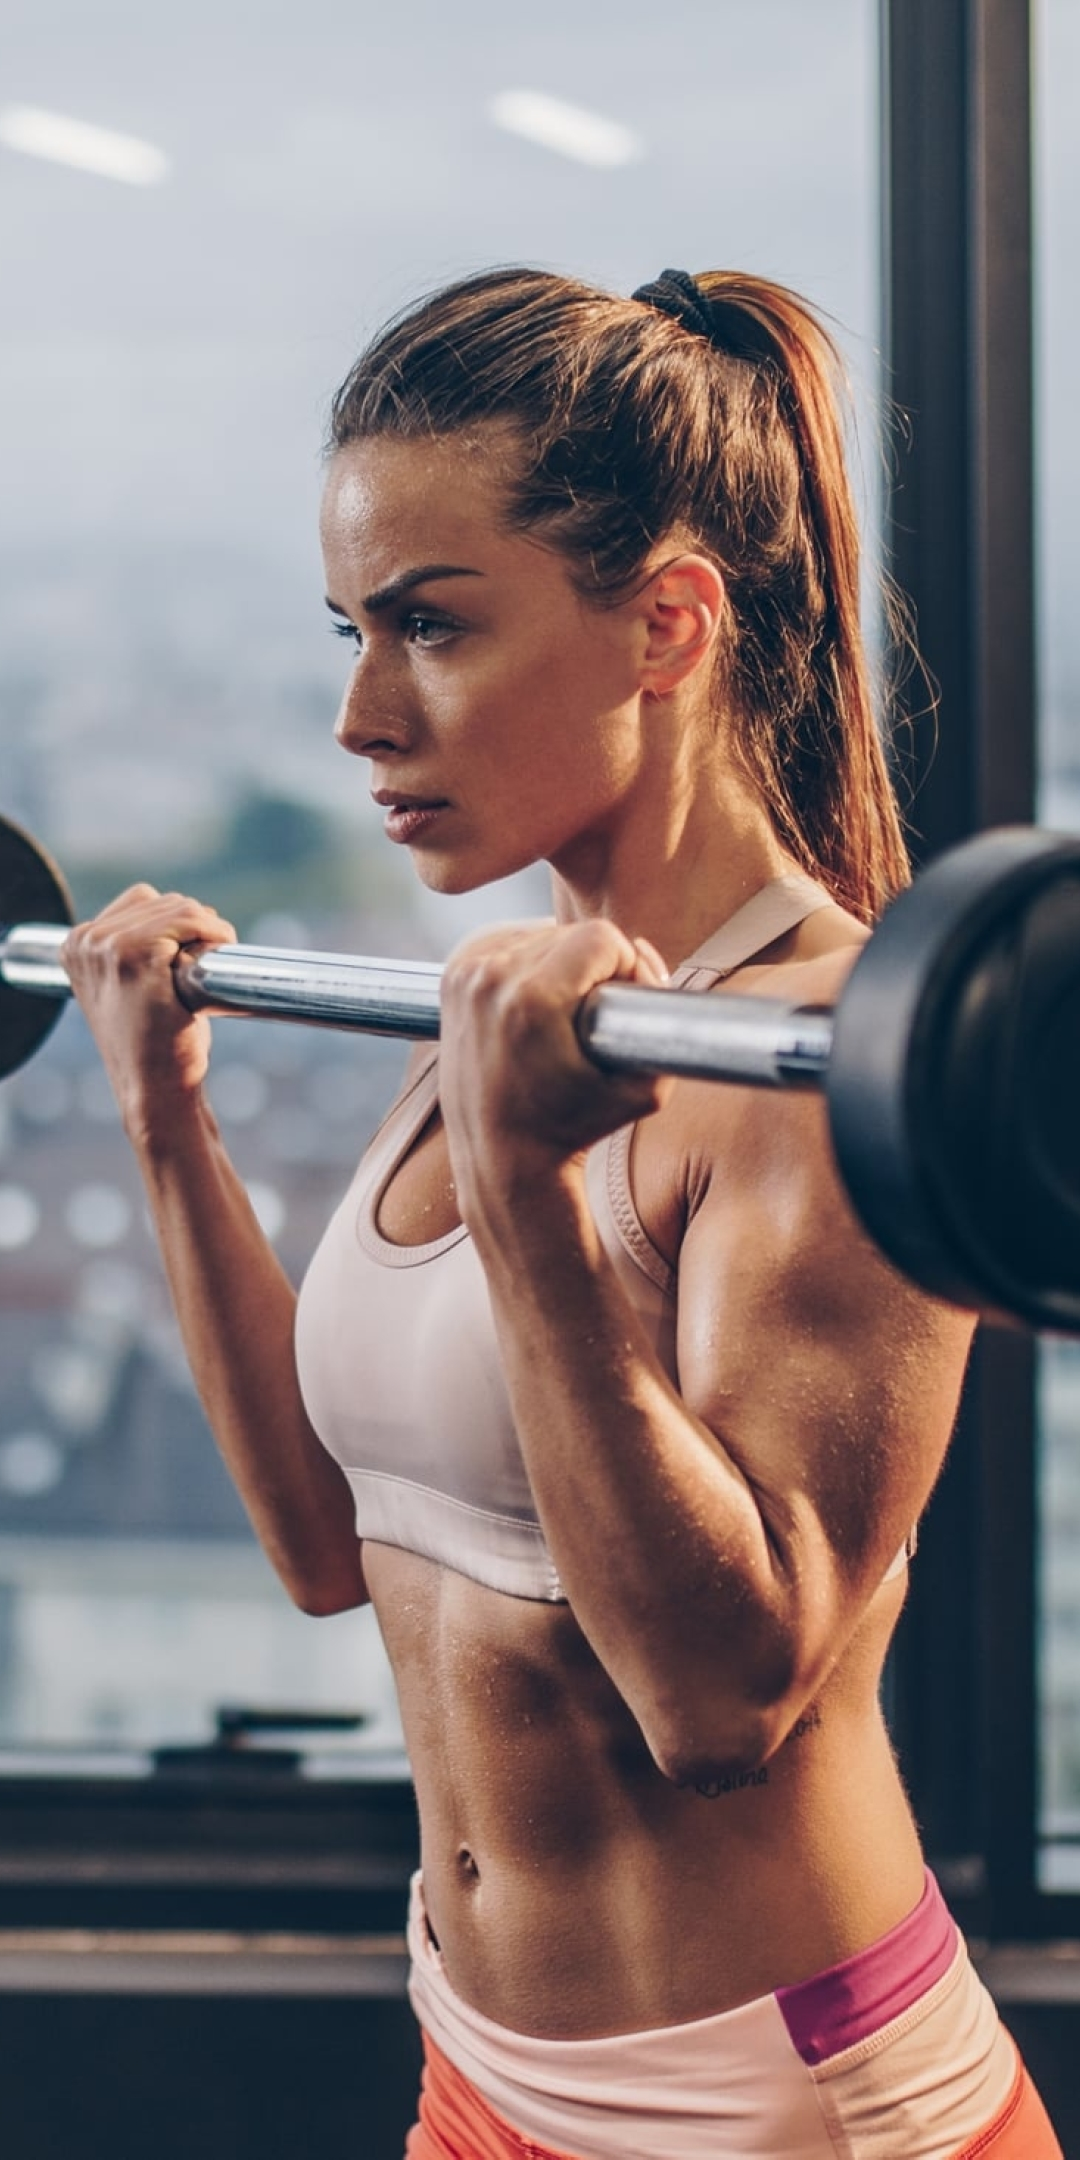 Girl Lifting Bar Wallpaper in 1080x2160 Resolution